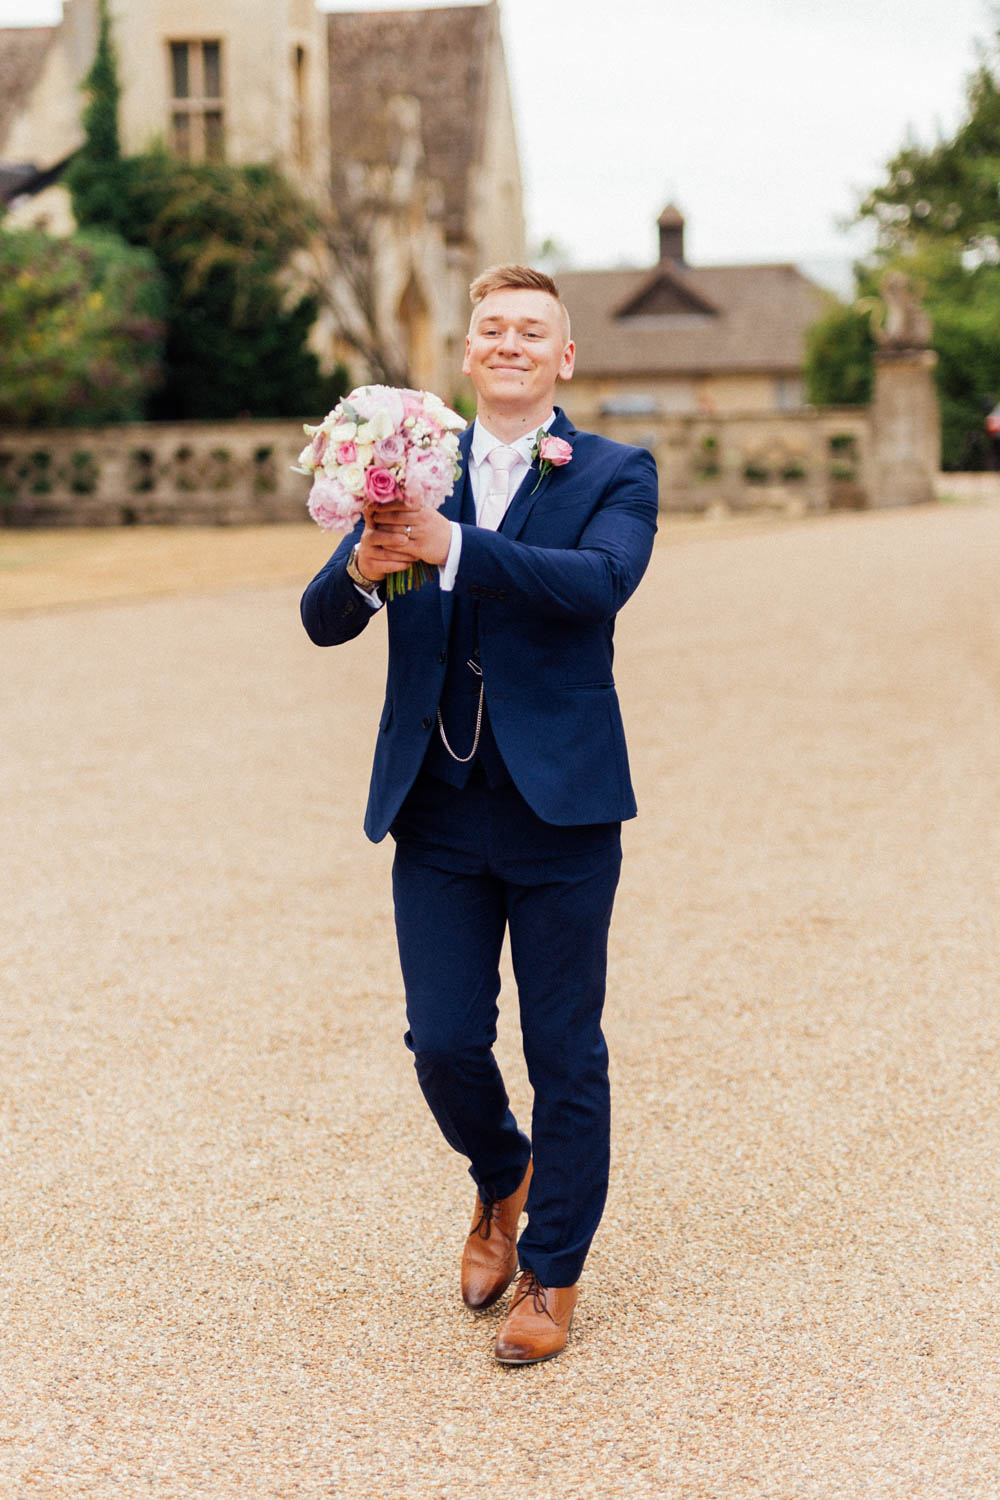 Special-Day-Photography-Manor-By-The-Lake-Cheltenham-Cheltenham-Manor-Wedding-the-groom-holding-the-bouquet.jpg